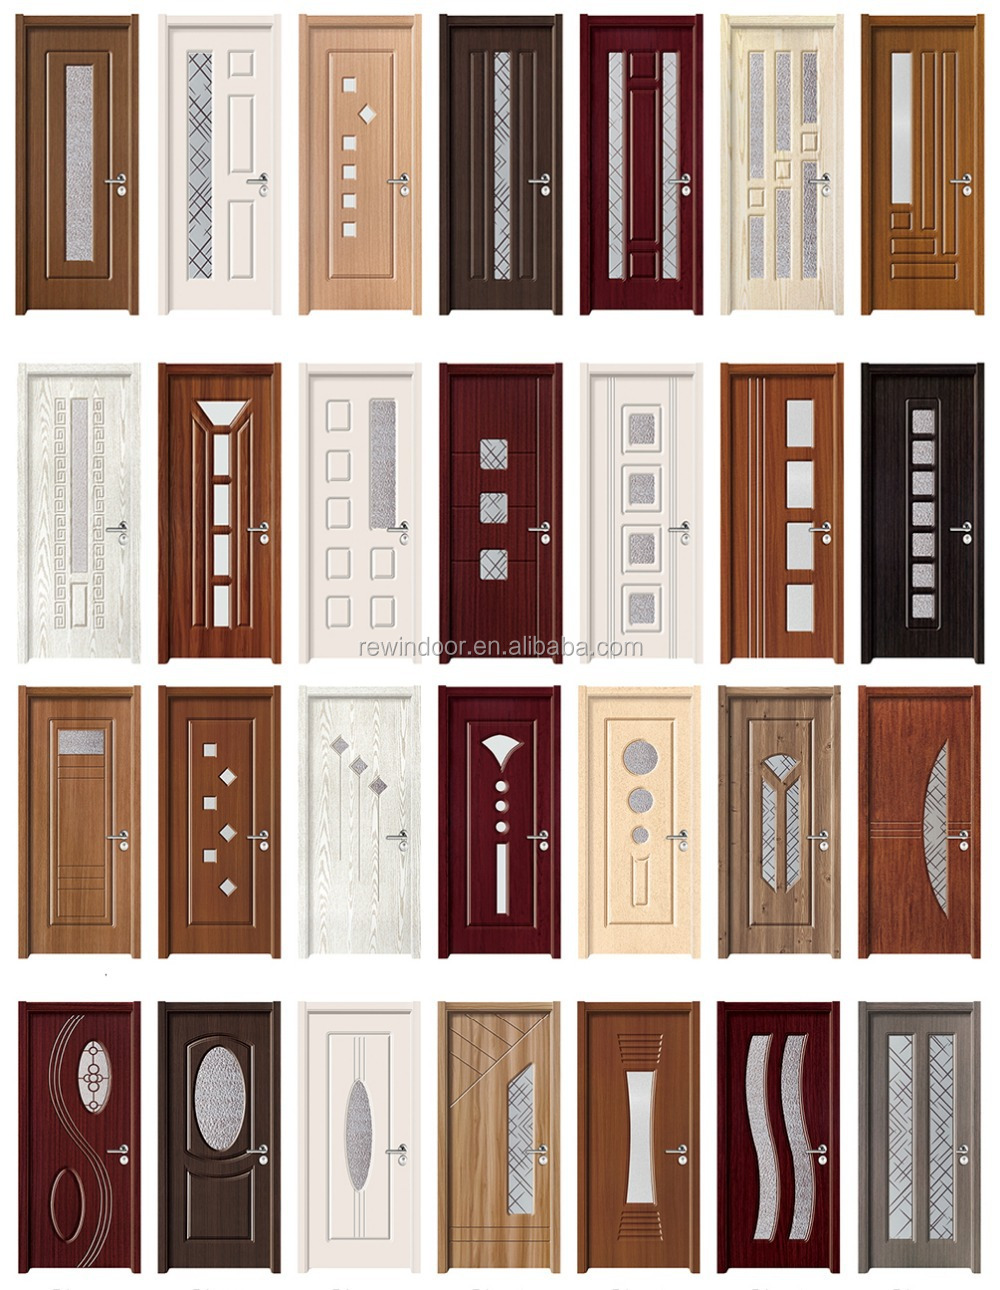 Bathroom pvc doors prices fiber bathroom door teak wood for New main door design